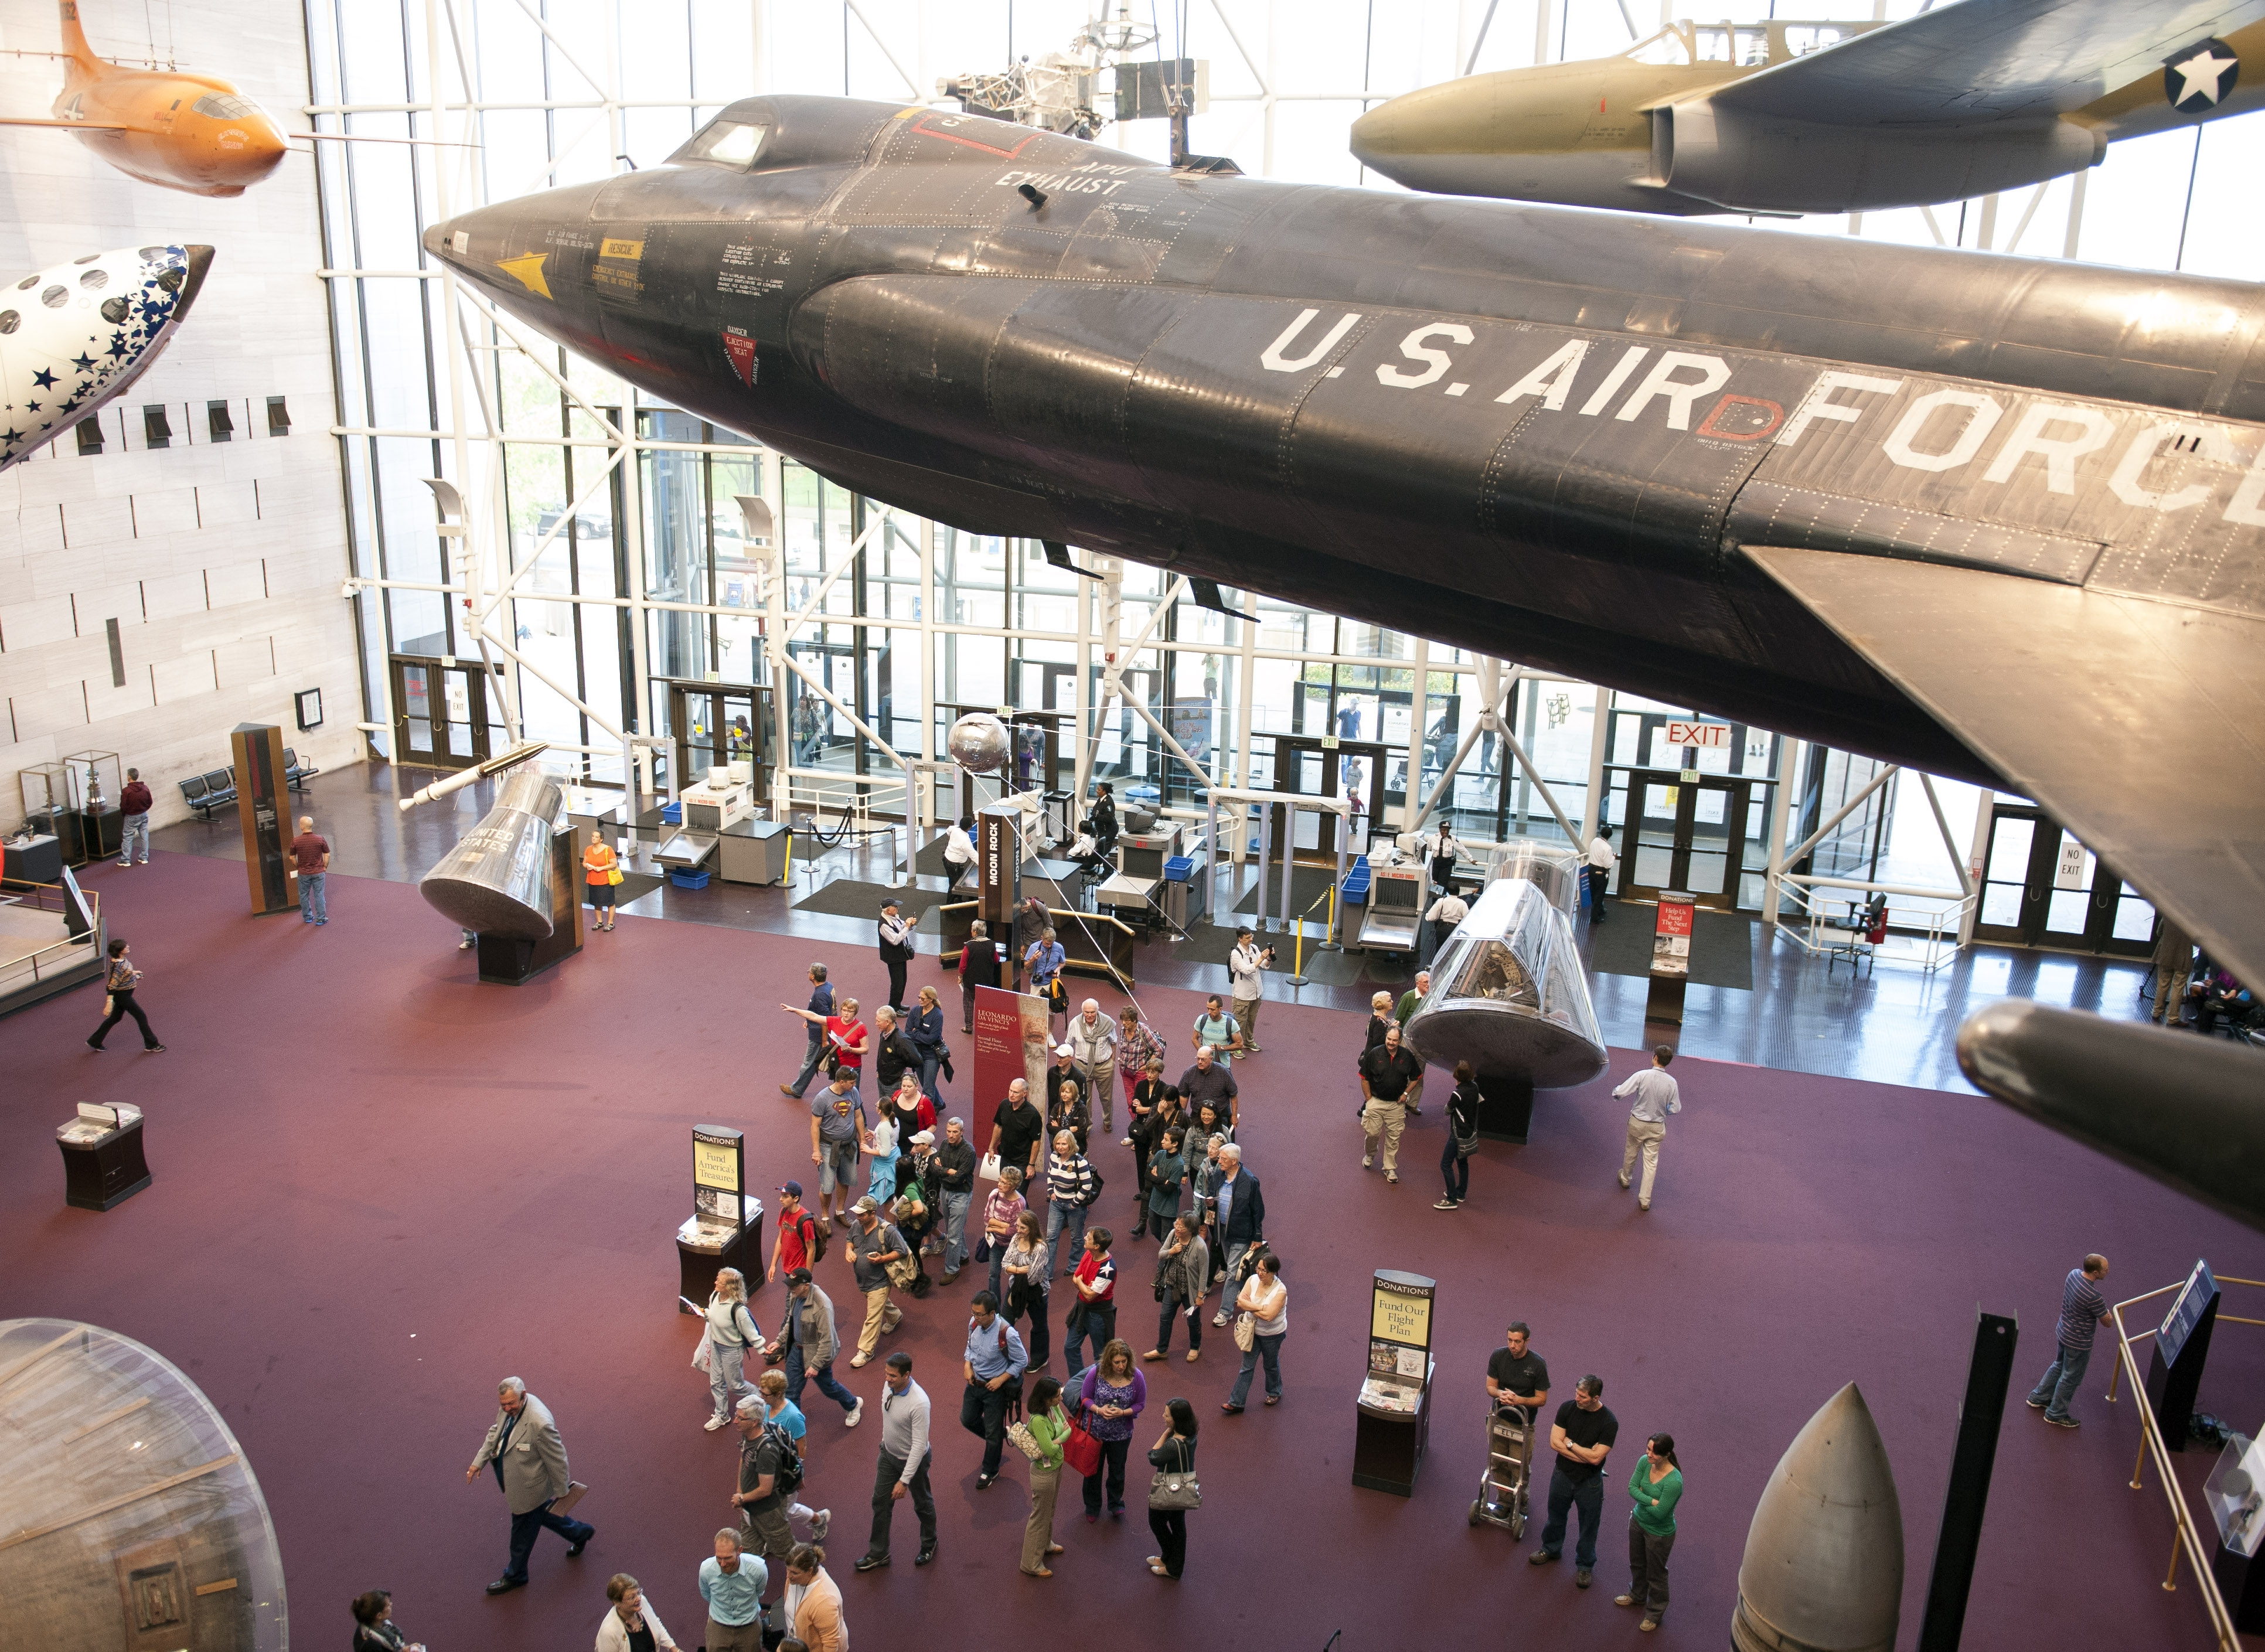 Visitors stream into the Smithsonian's Air and Space Museum when it opened Thursday after being closed by the government shutdown. (AP photo)